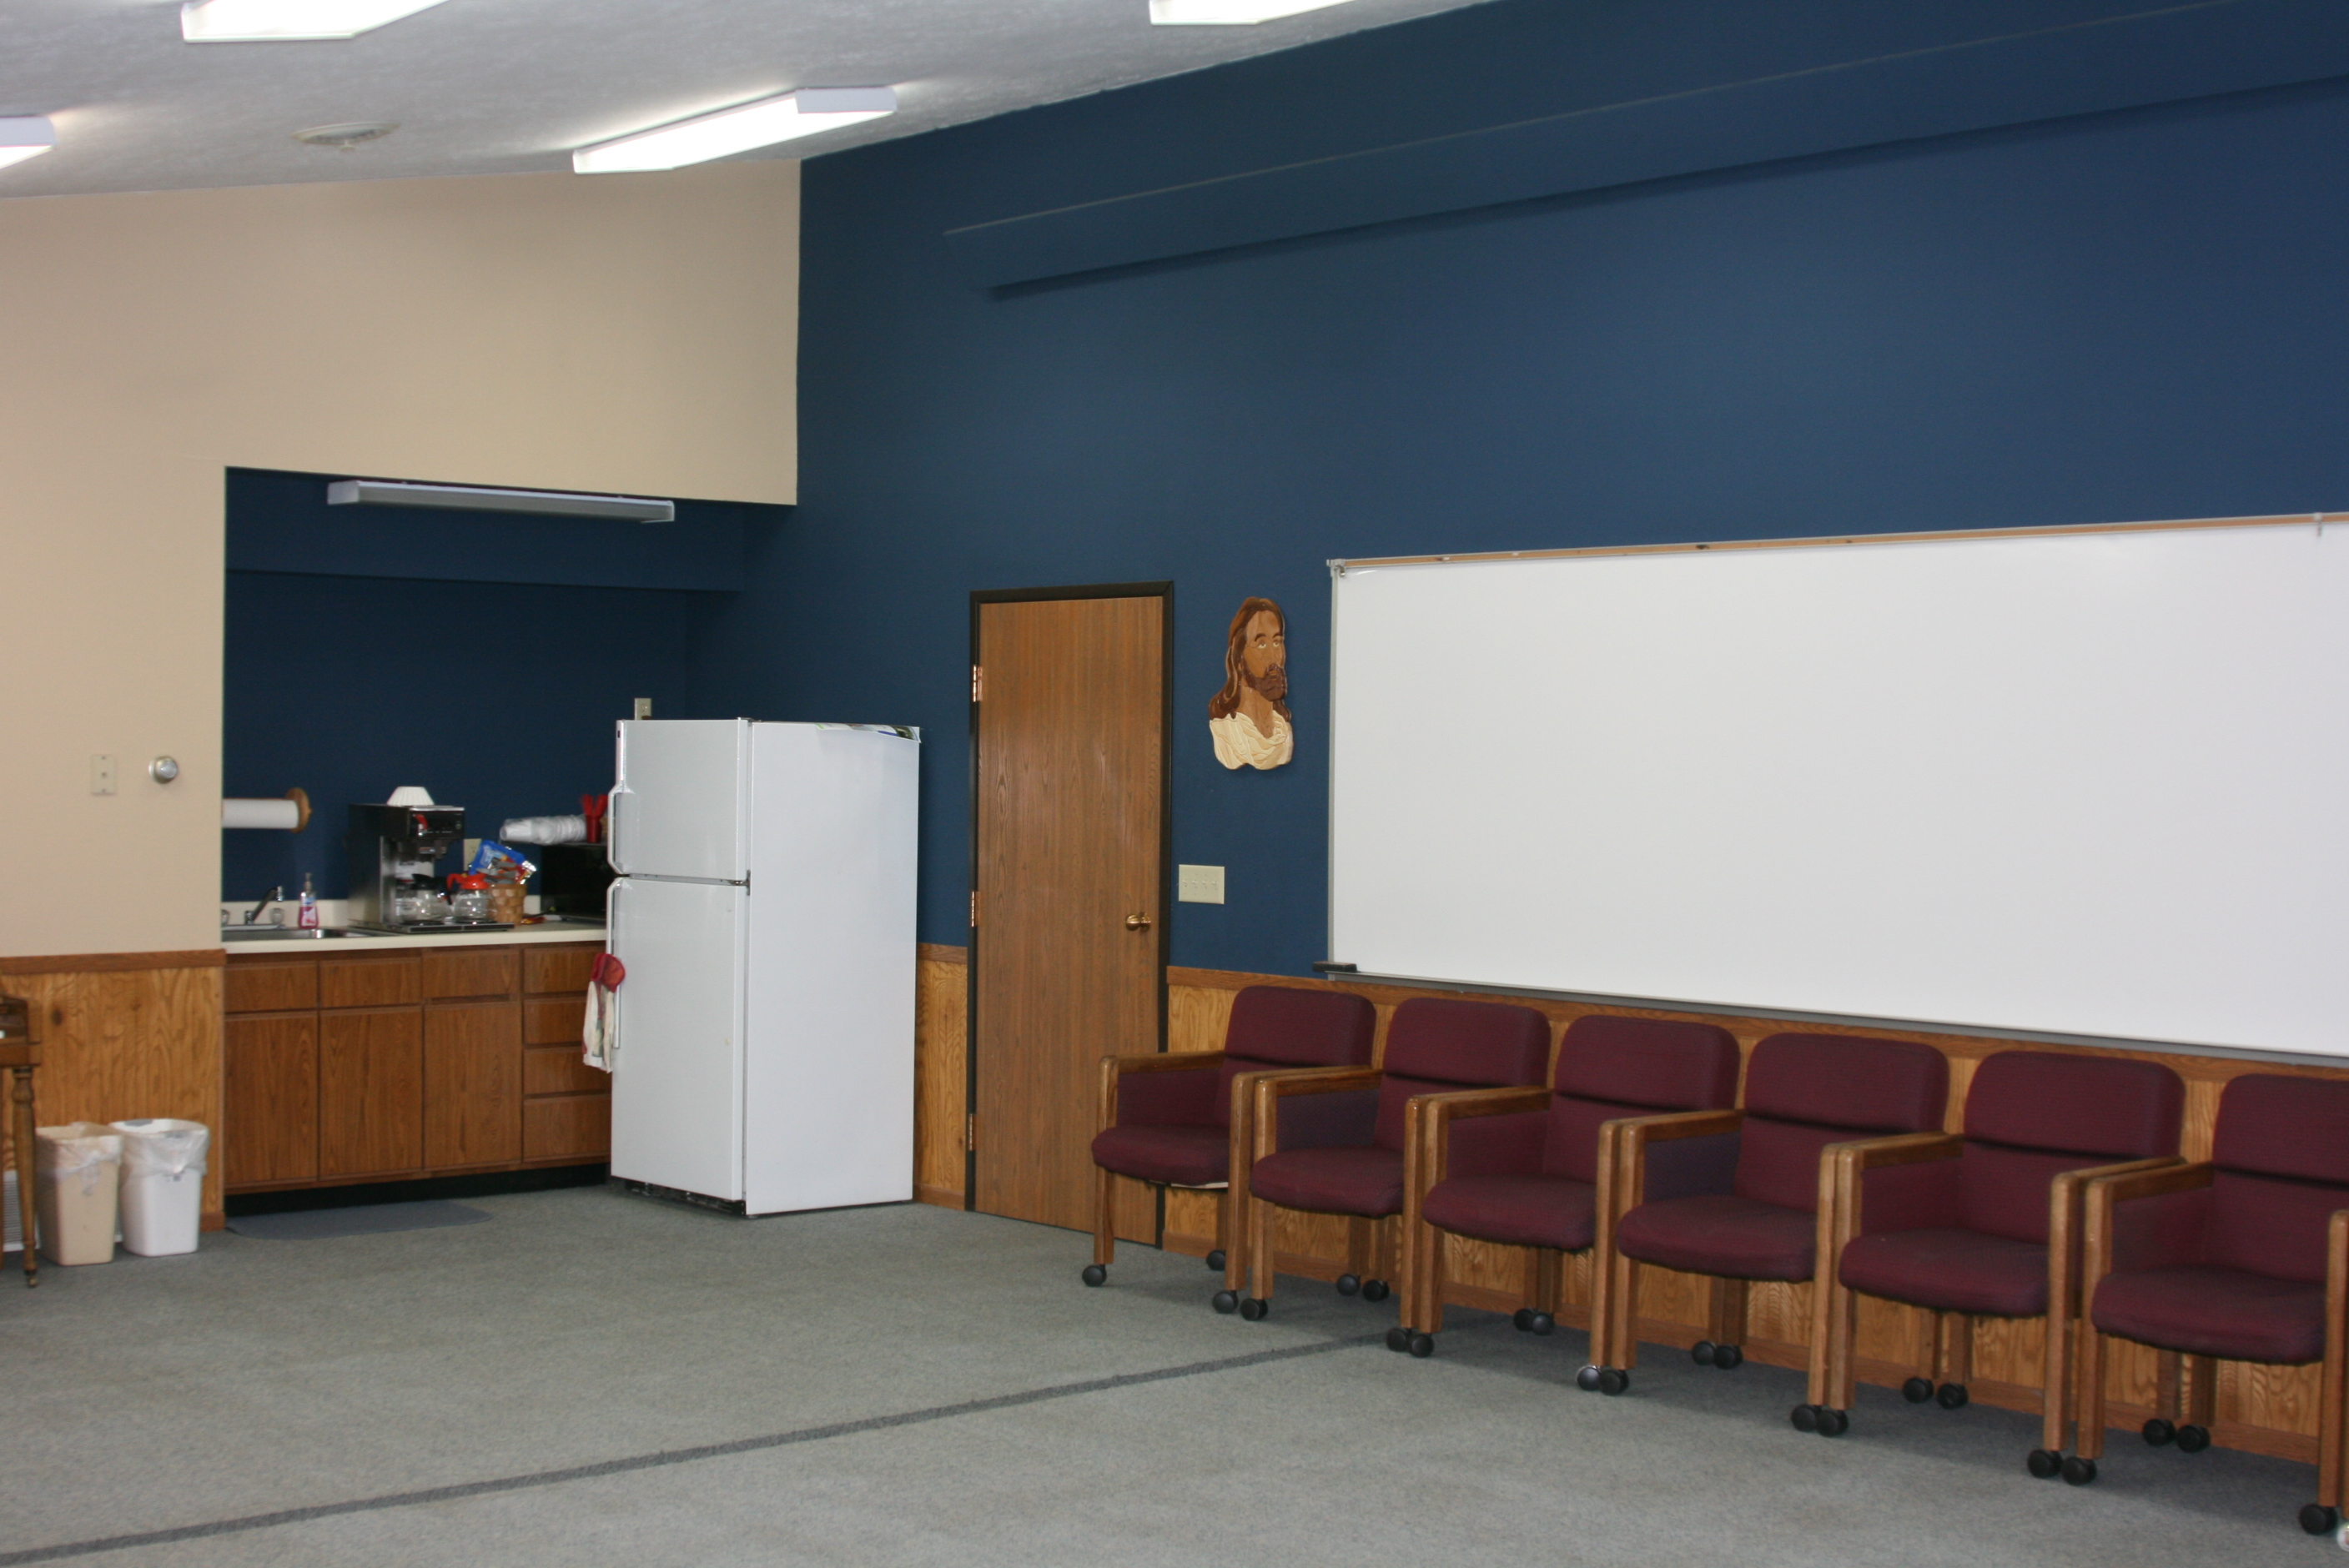 Folkers Kitchenette and White Board